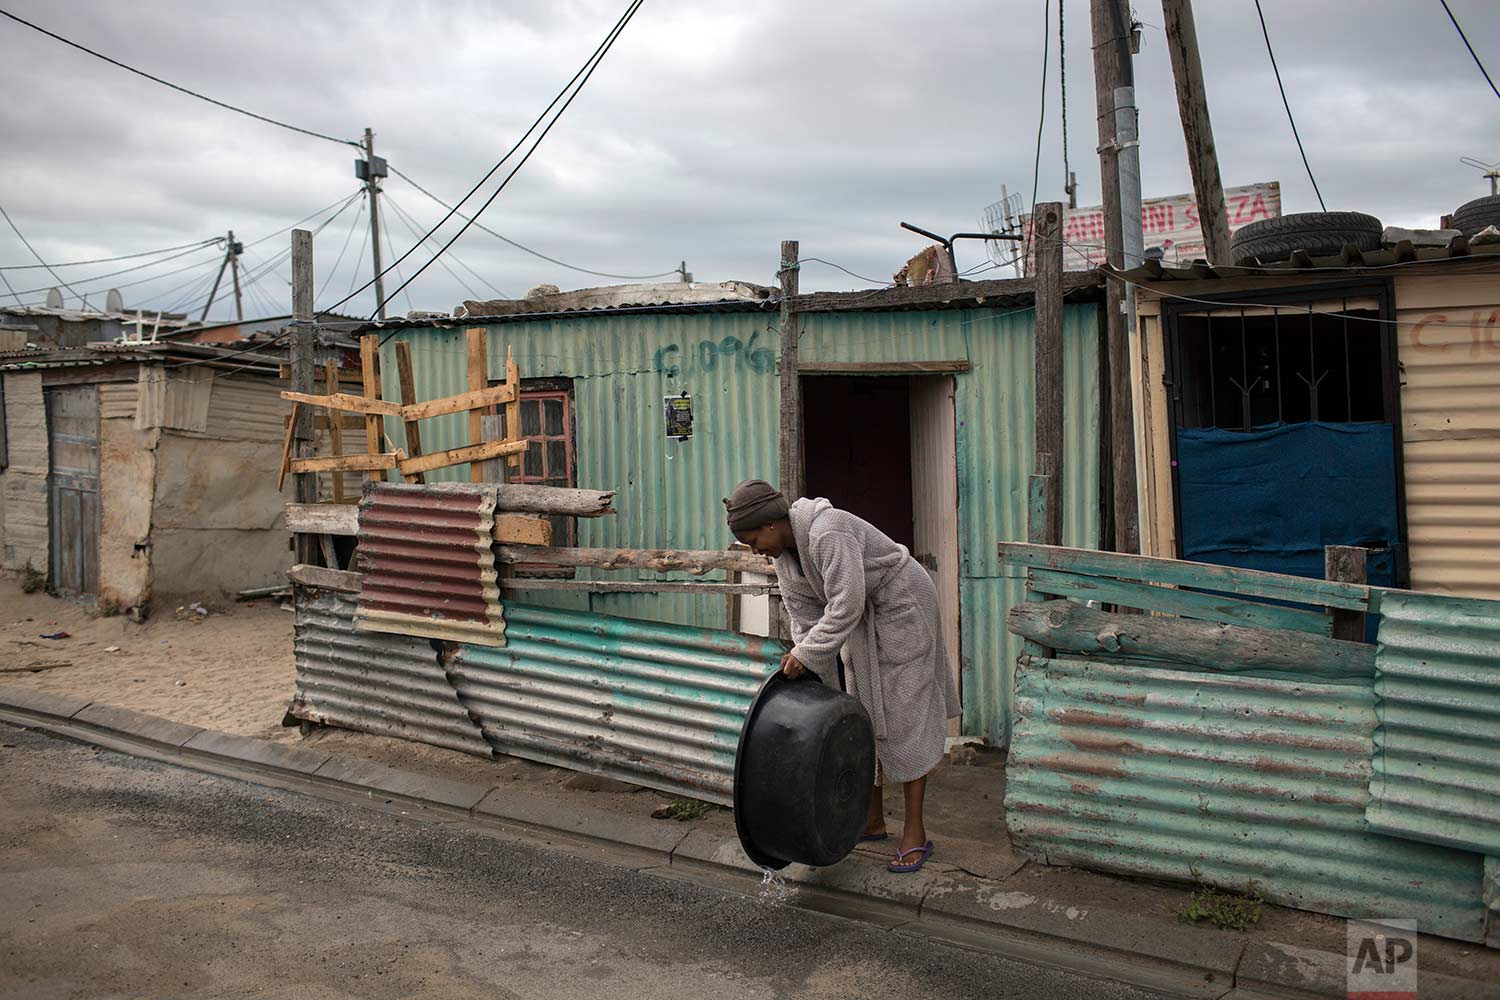 A woman throws away used water in a settlement near Cape Town on Friday, Feb. 2, 2018. (AP Photo/Bram Janssen)